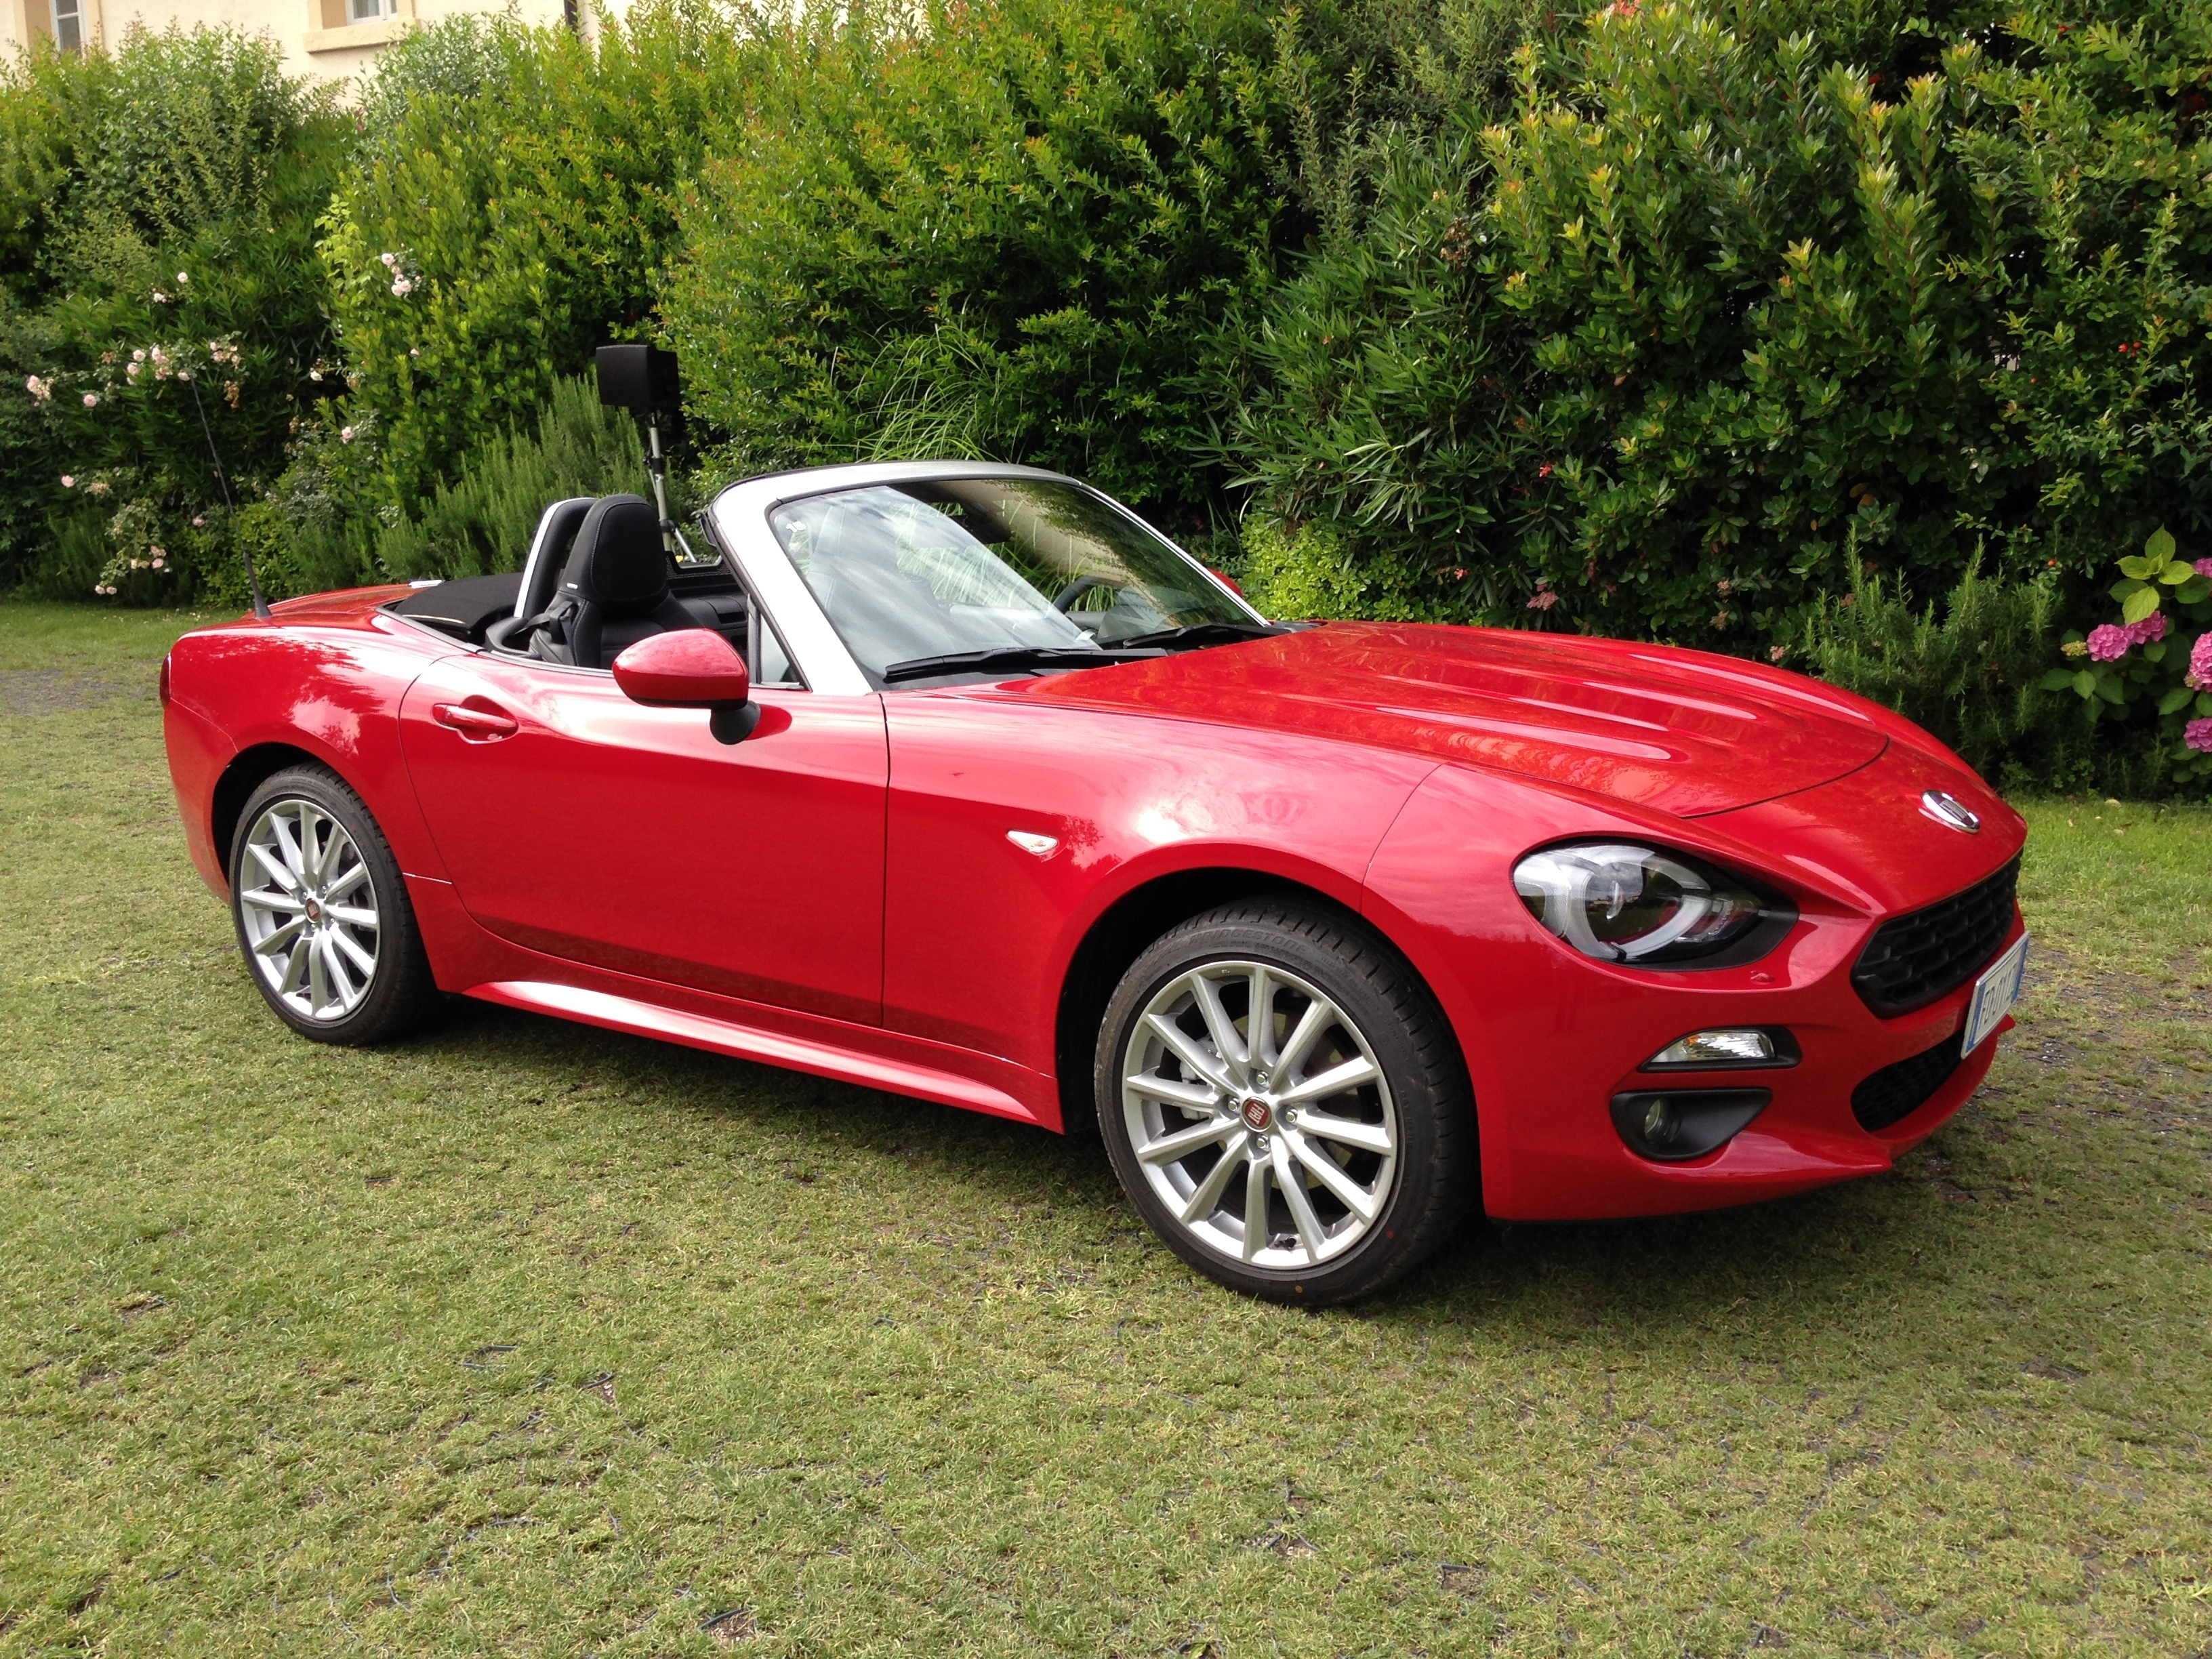 premi re vid o de la fiat 124 spider d couvrez les premi res images de l 39 essai en live. Black Bedroom Furniture Sets. Home Design Ideas